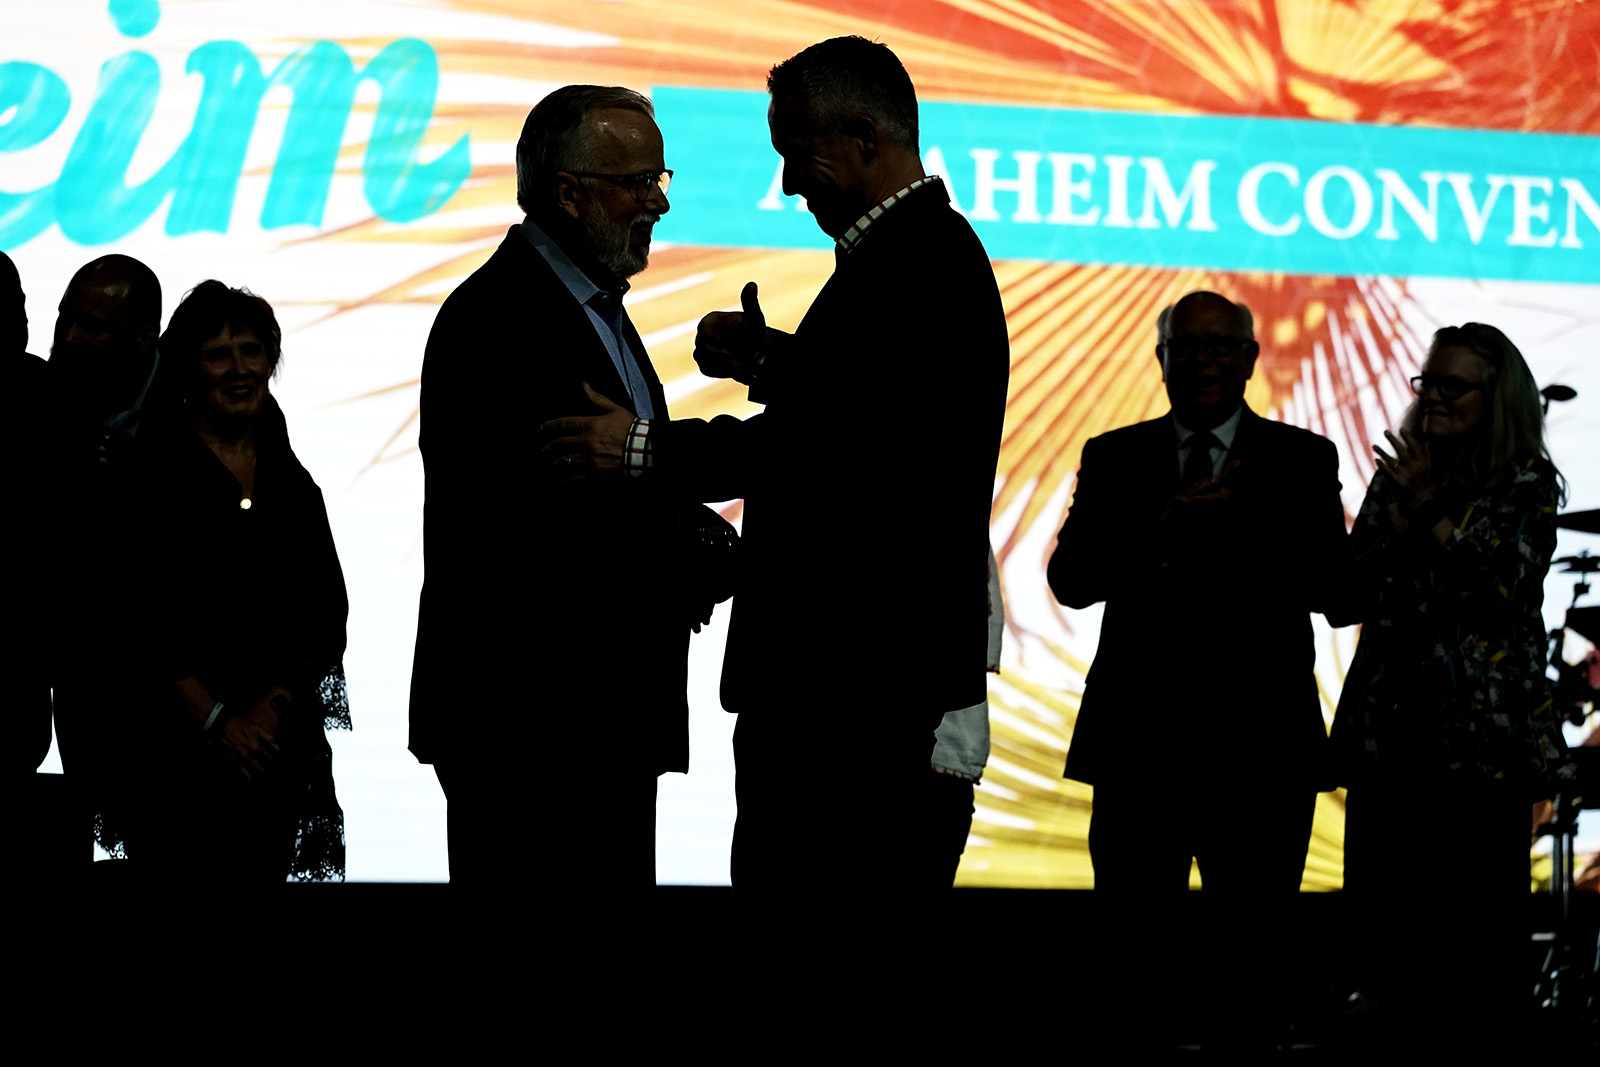 Incoming Southern Baptist Convention President Ed Litton, center left, talks with outgoing President J.D. Greear, center right, at the conclusion of the annual Southern Baptist Convention meeting, Wednesday, June 16, 2021, in Nashville, Tenn. (AP Photo/Mark Humphrey)